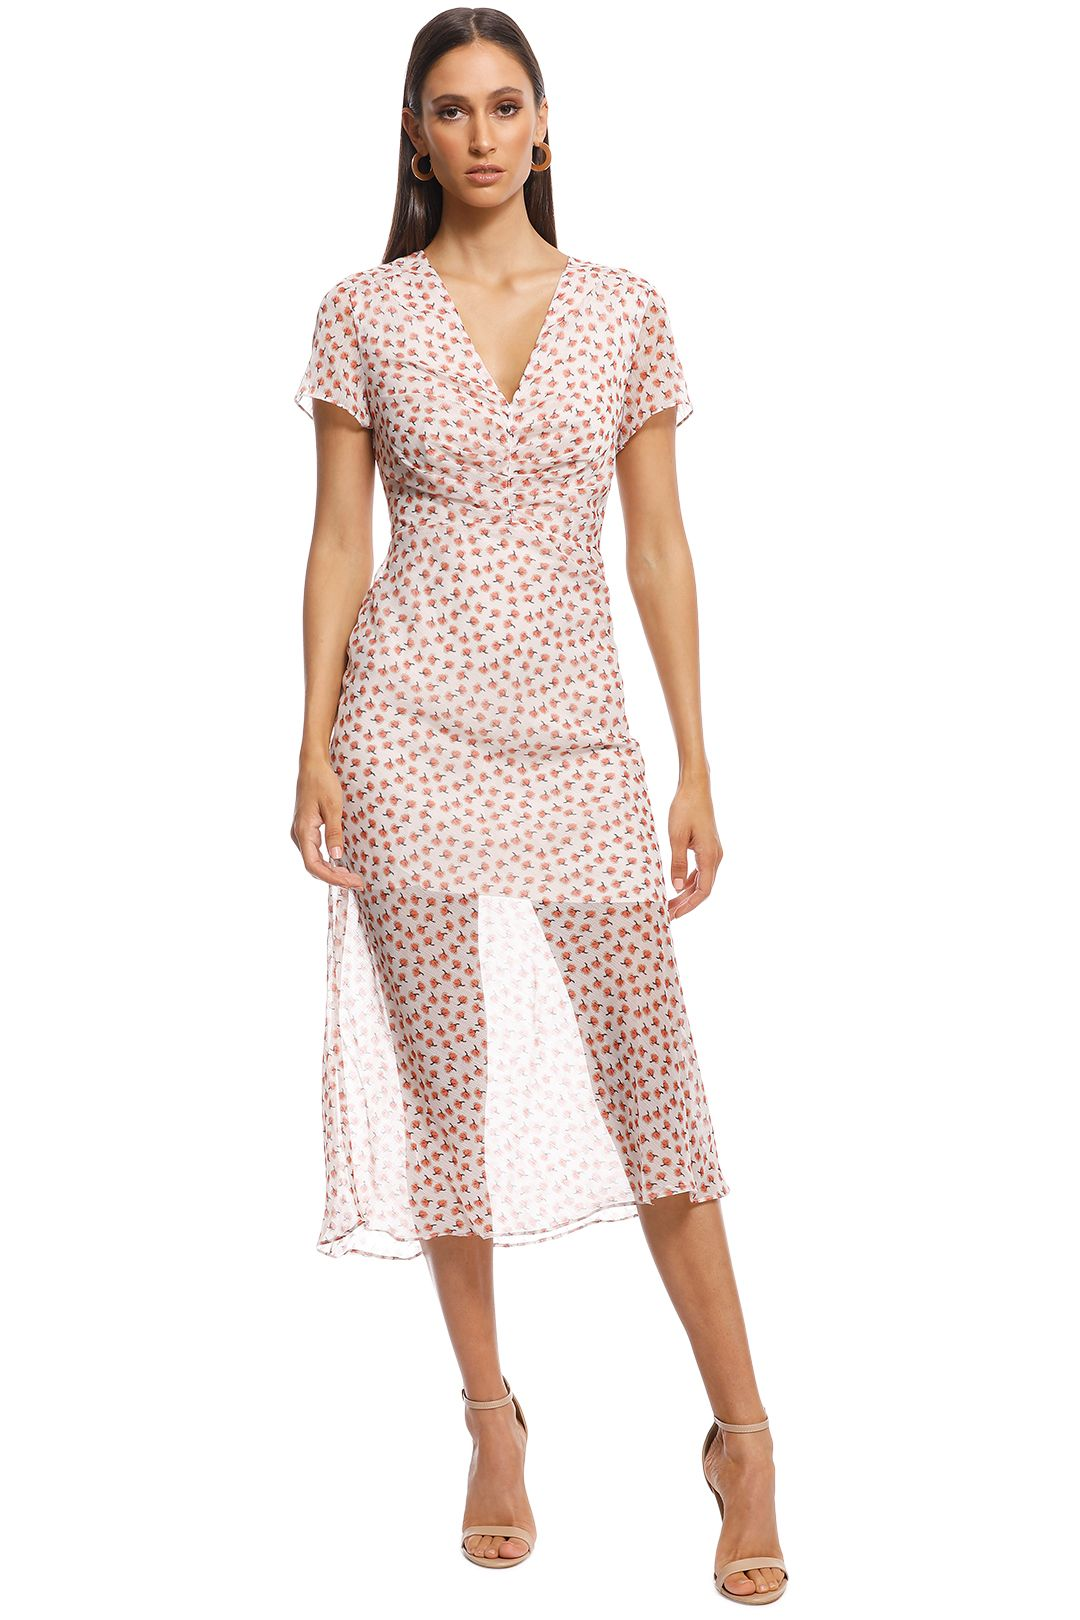 The East Order - Fin Midi Dress - Print - Front